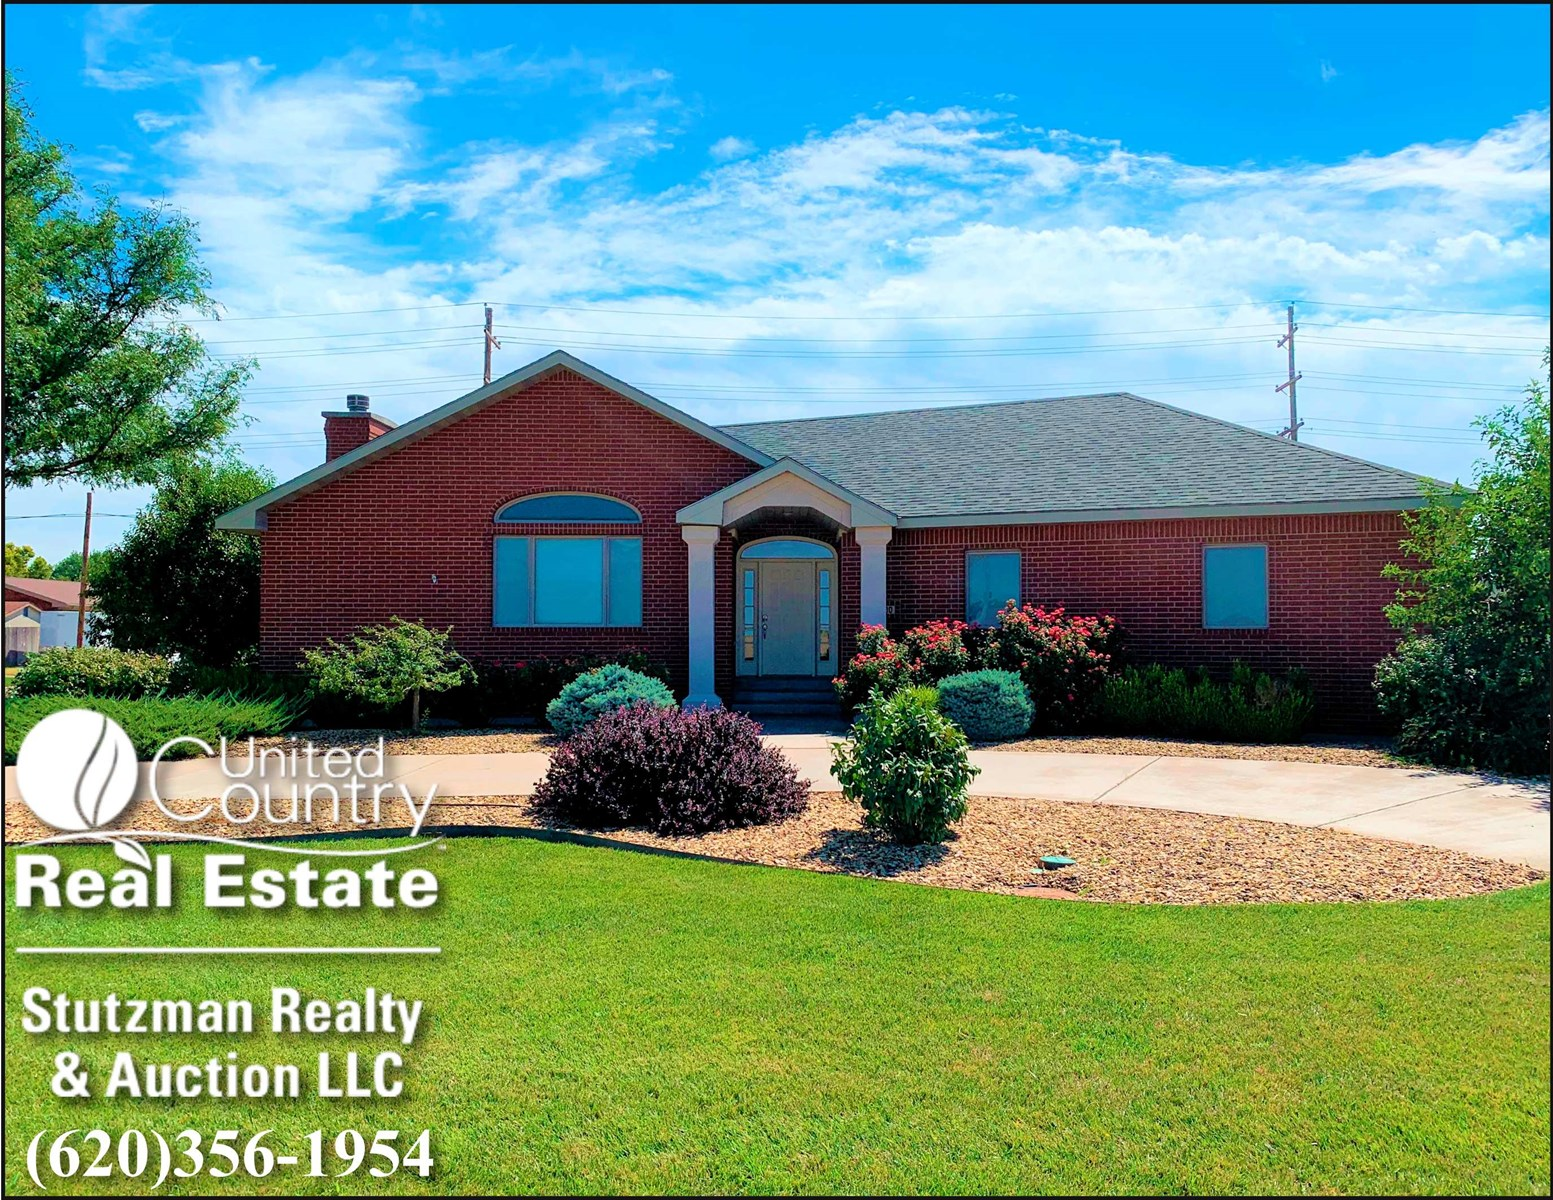 LARGE BRICK HOME SITUATED ON A CORNER LOT FOR SALE IN SW KS